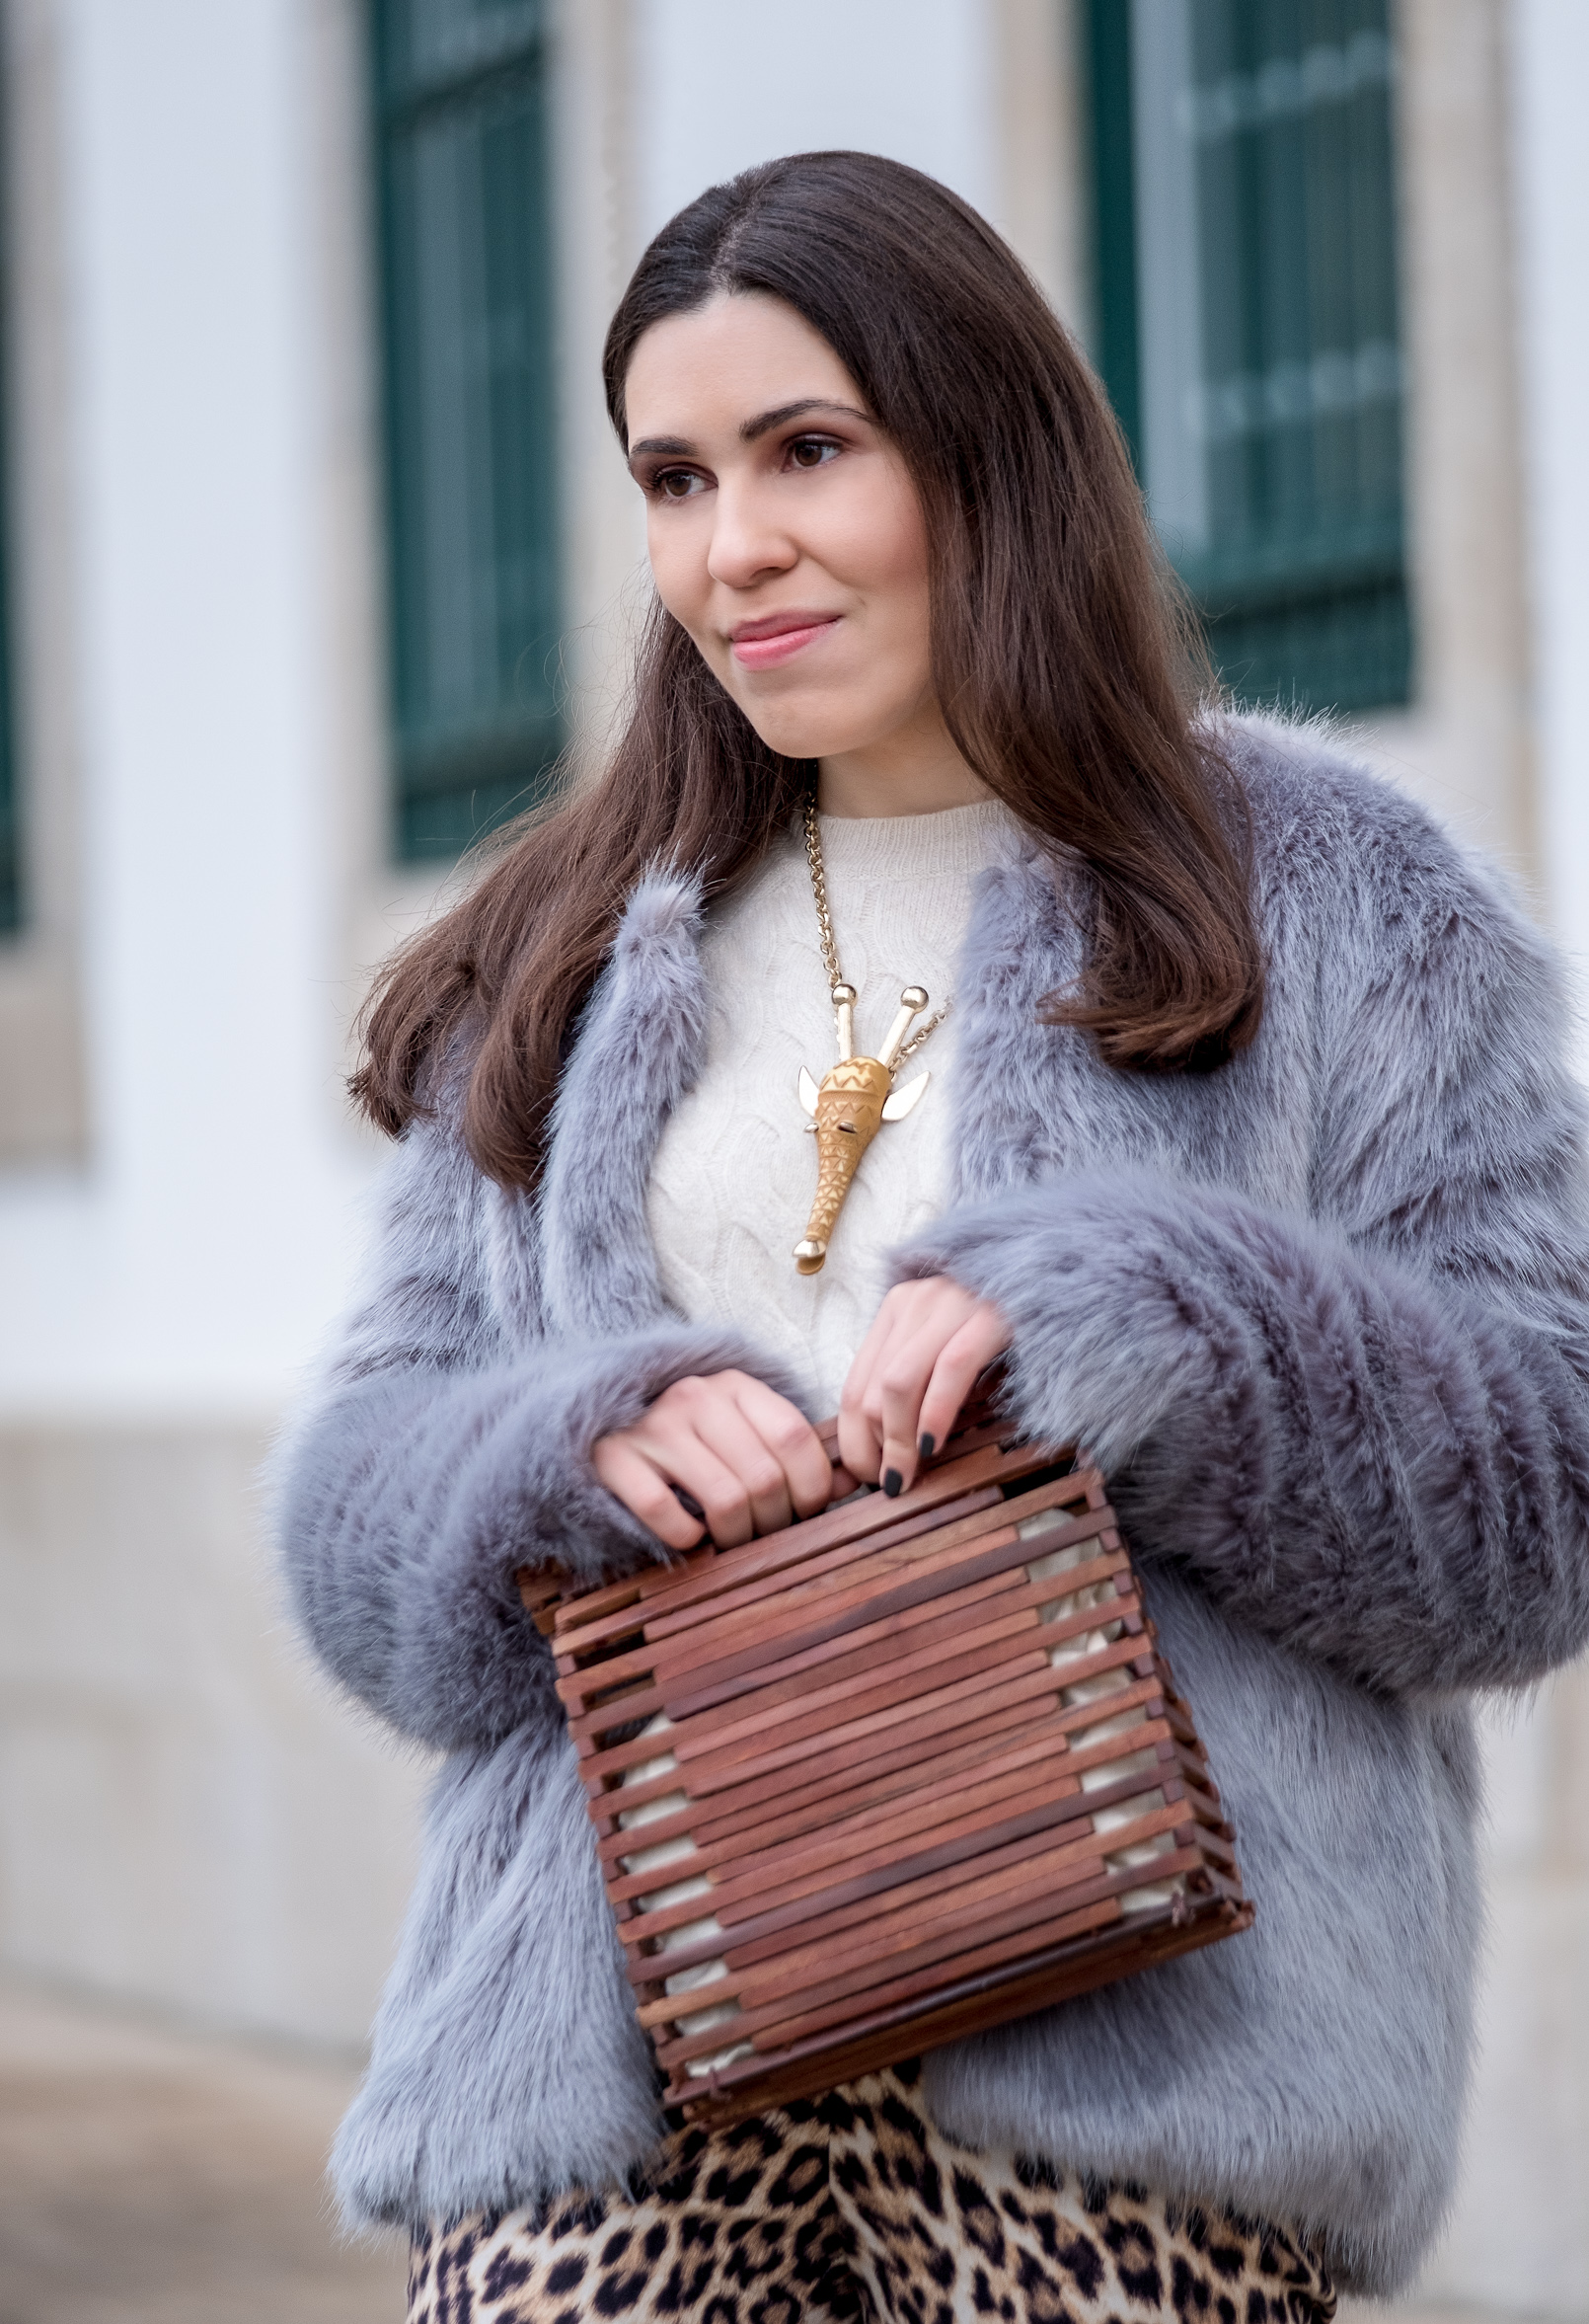 Le Fashionaire faux fur pale blue bershka coat cashmere cable knit mango gold nude brown giraffe bold necklace wood hand made zara bag 1264 EN faux fur pale blue bershka coat cashmere cable knit mango gold nude brown giraffe bold necklace wood hand made zara bag 1264 EN